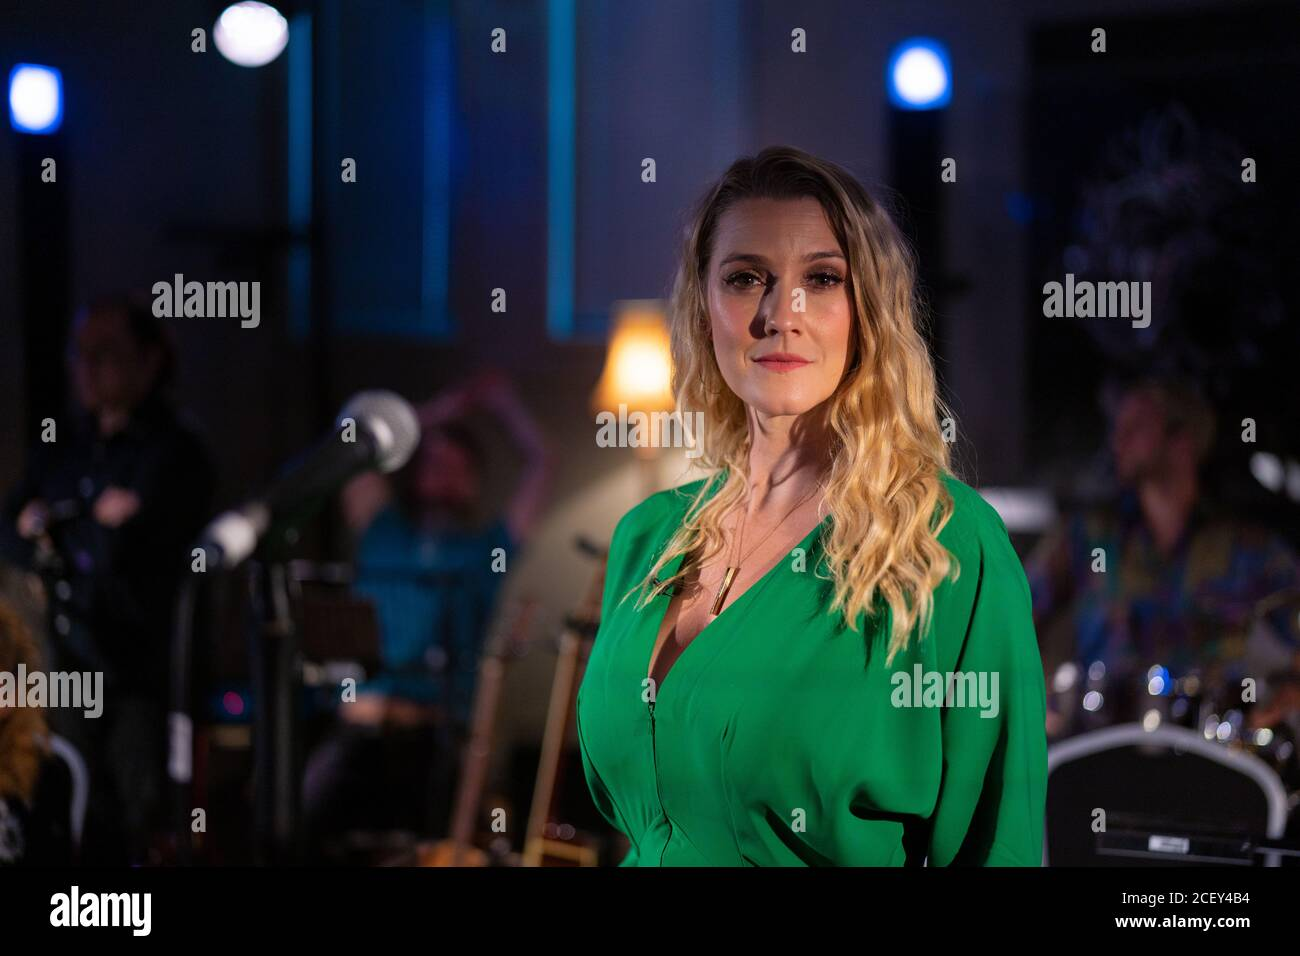 Alice Fearn poses for photos at L-Acoustics Creation in London as part of West End Unplugged, an initiative to raise money for various charities suppo Stock Photo